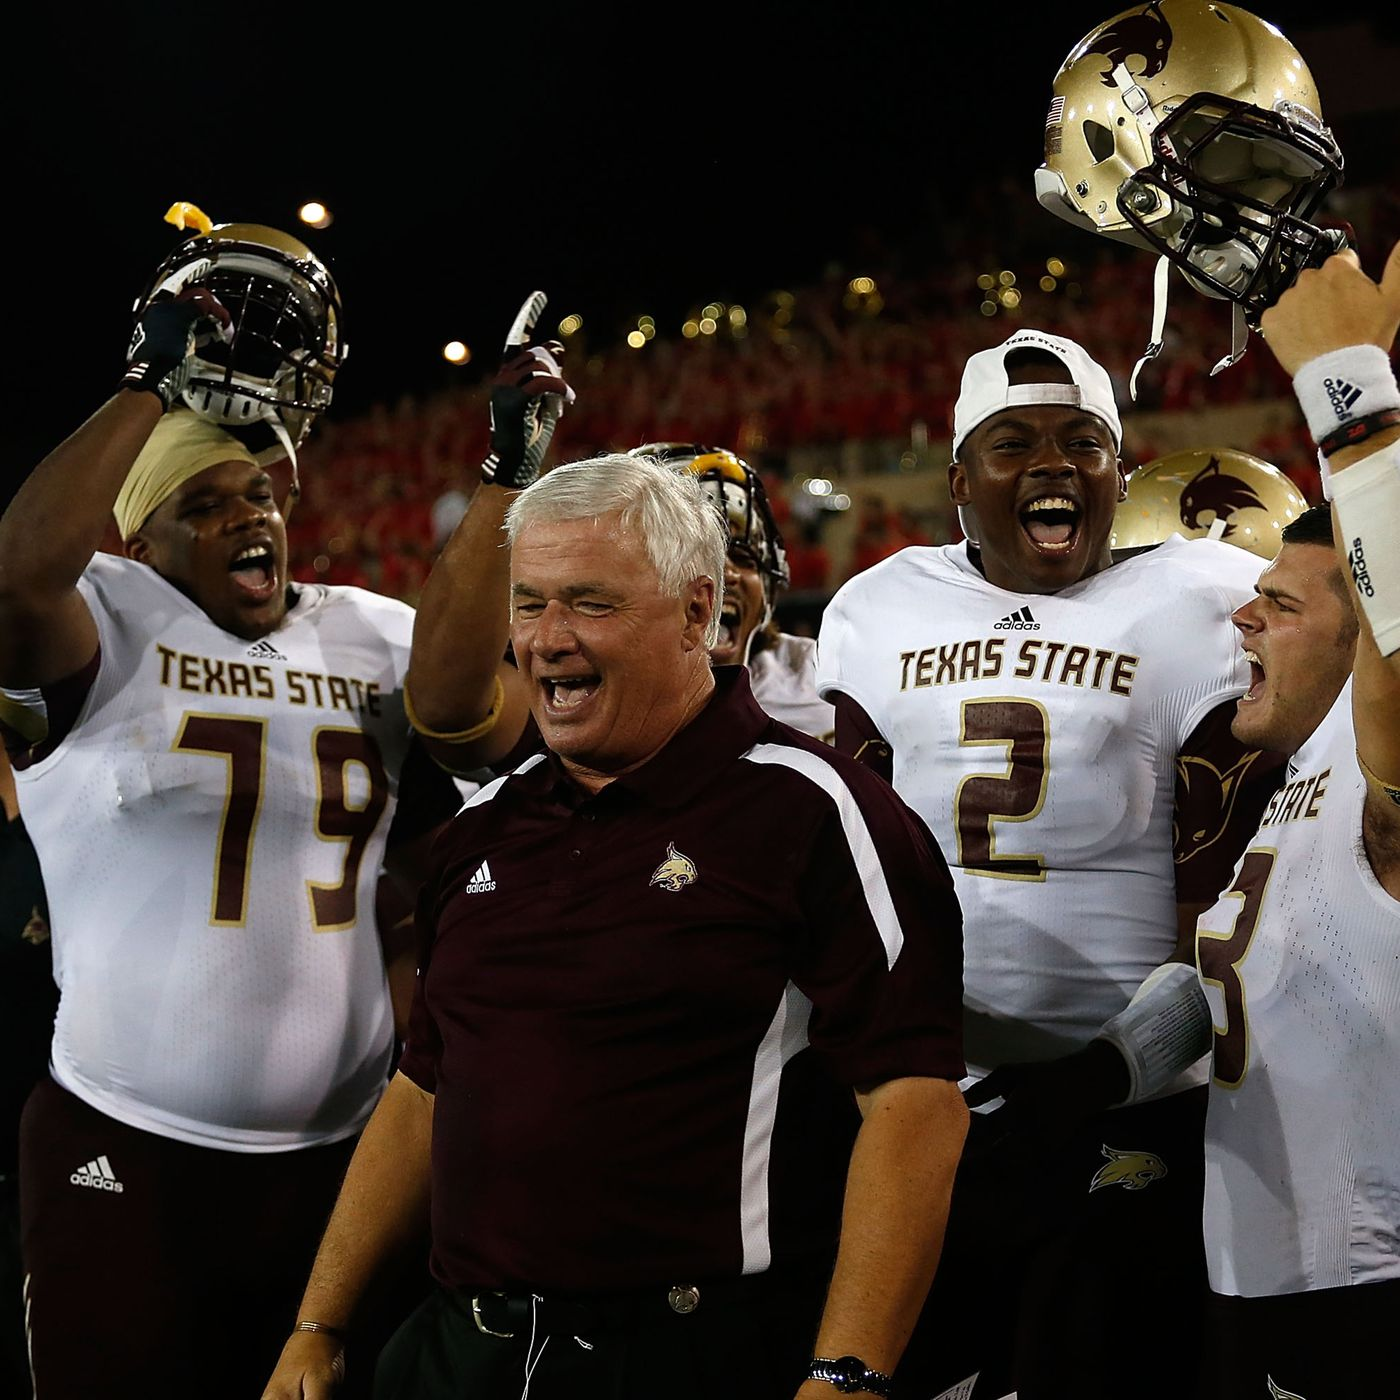 2013 Texas State football s 10 things to know  Year 2 s (reasonably) high  expectations 468ab0a85